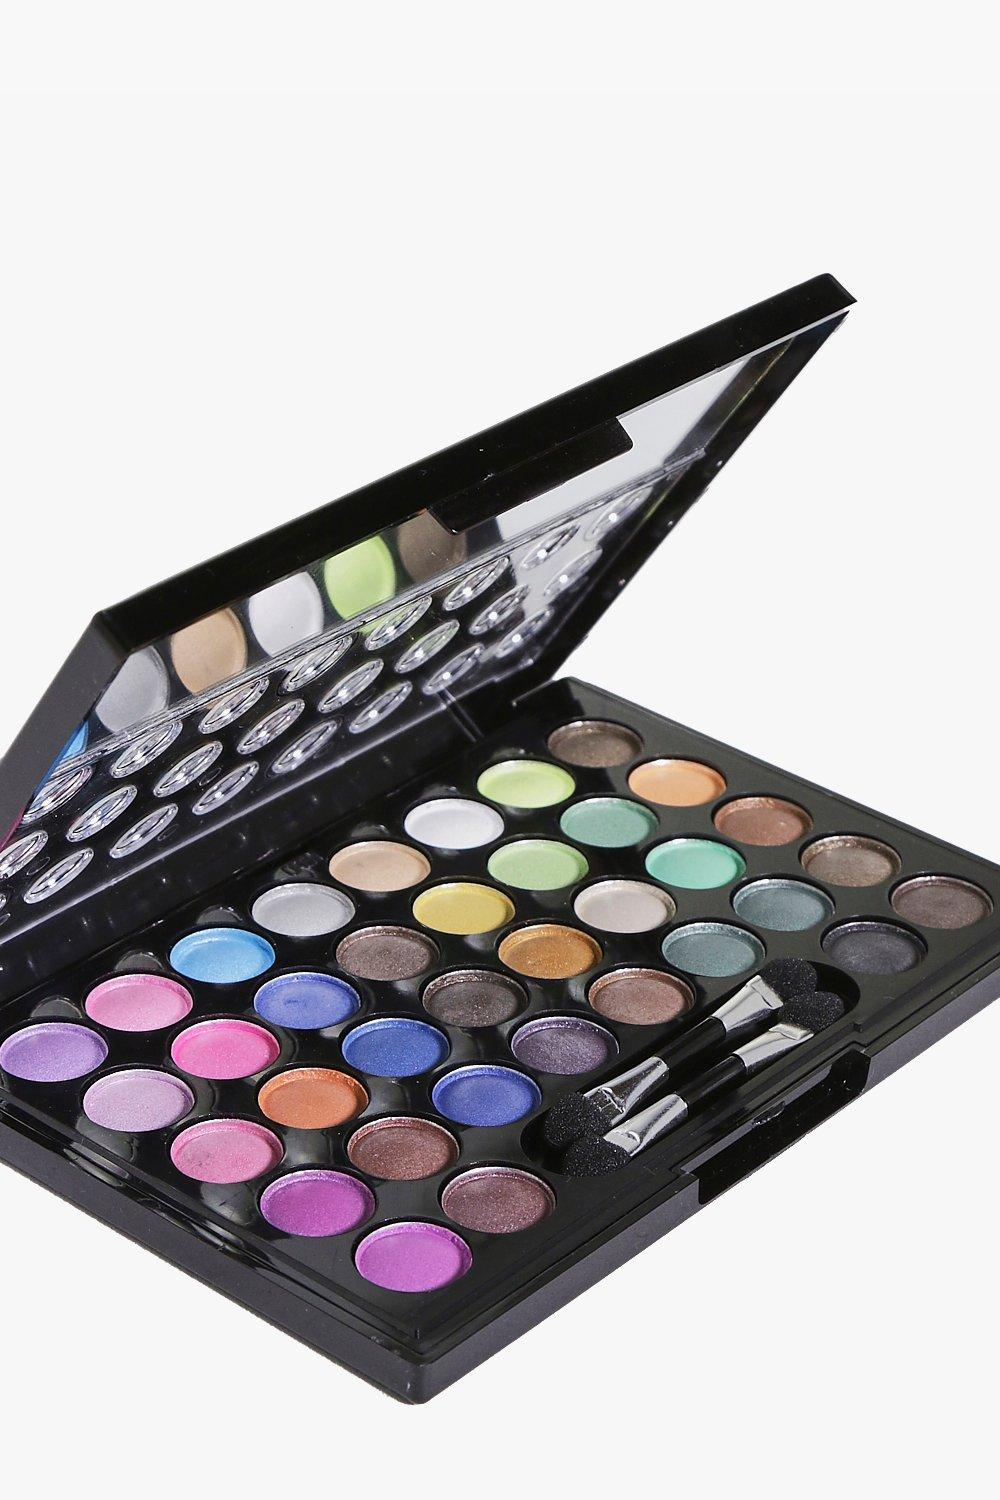 36 Eyeshadow Palette